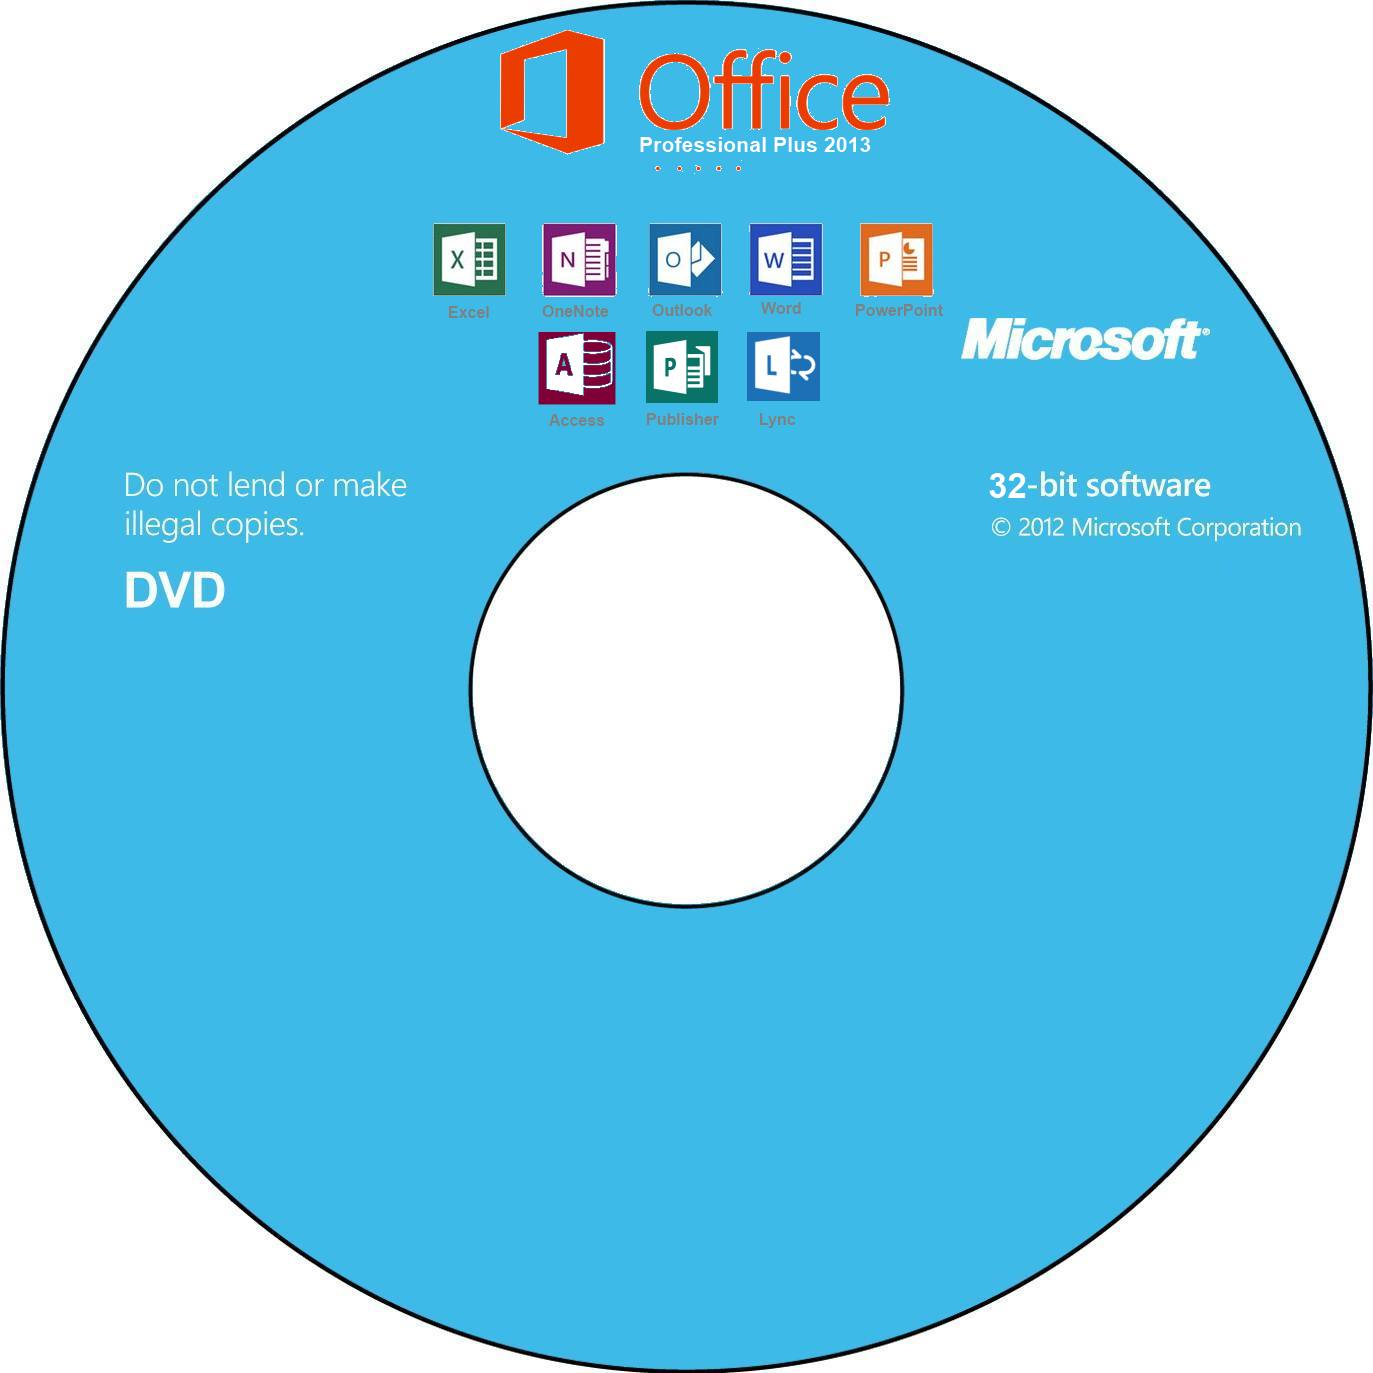 microsoft office 2013 formerly office 15 is the latest version of the